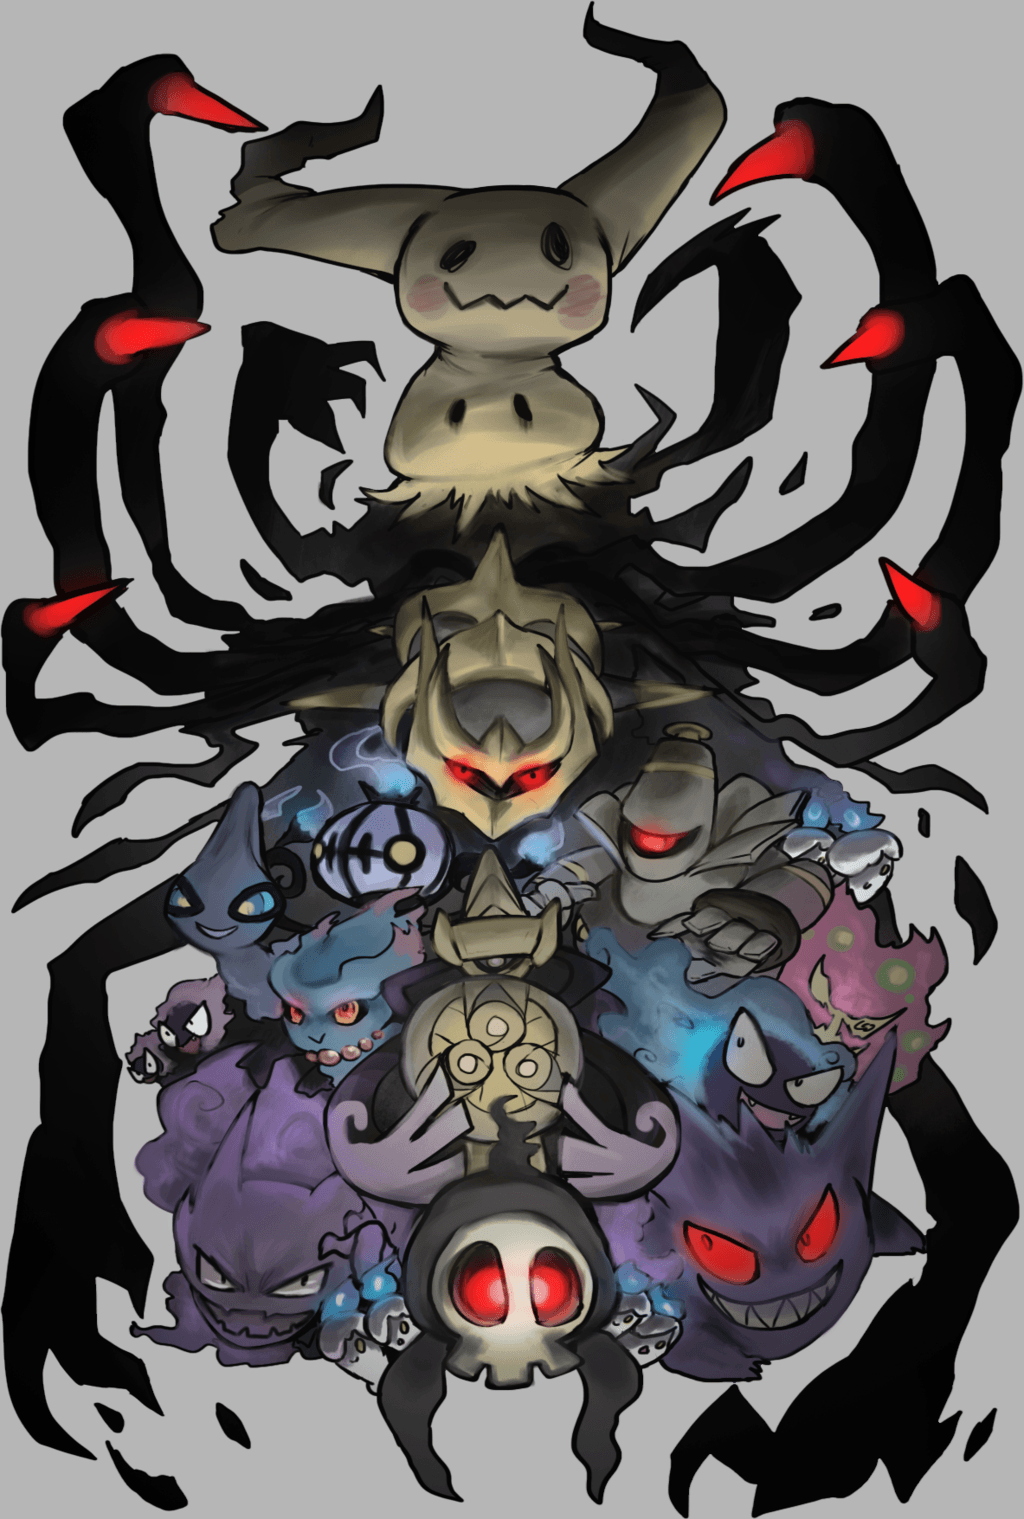 Ghost pokemon wallpapers top free ghost pokemon backgrounds wallpaperaccess - Pokemon ghost wallpaper ...